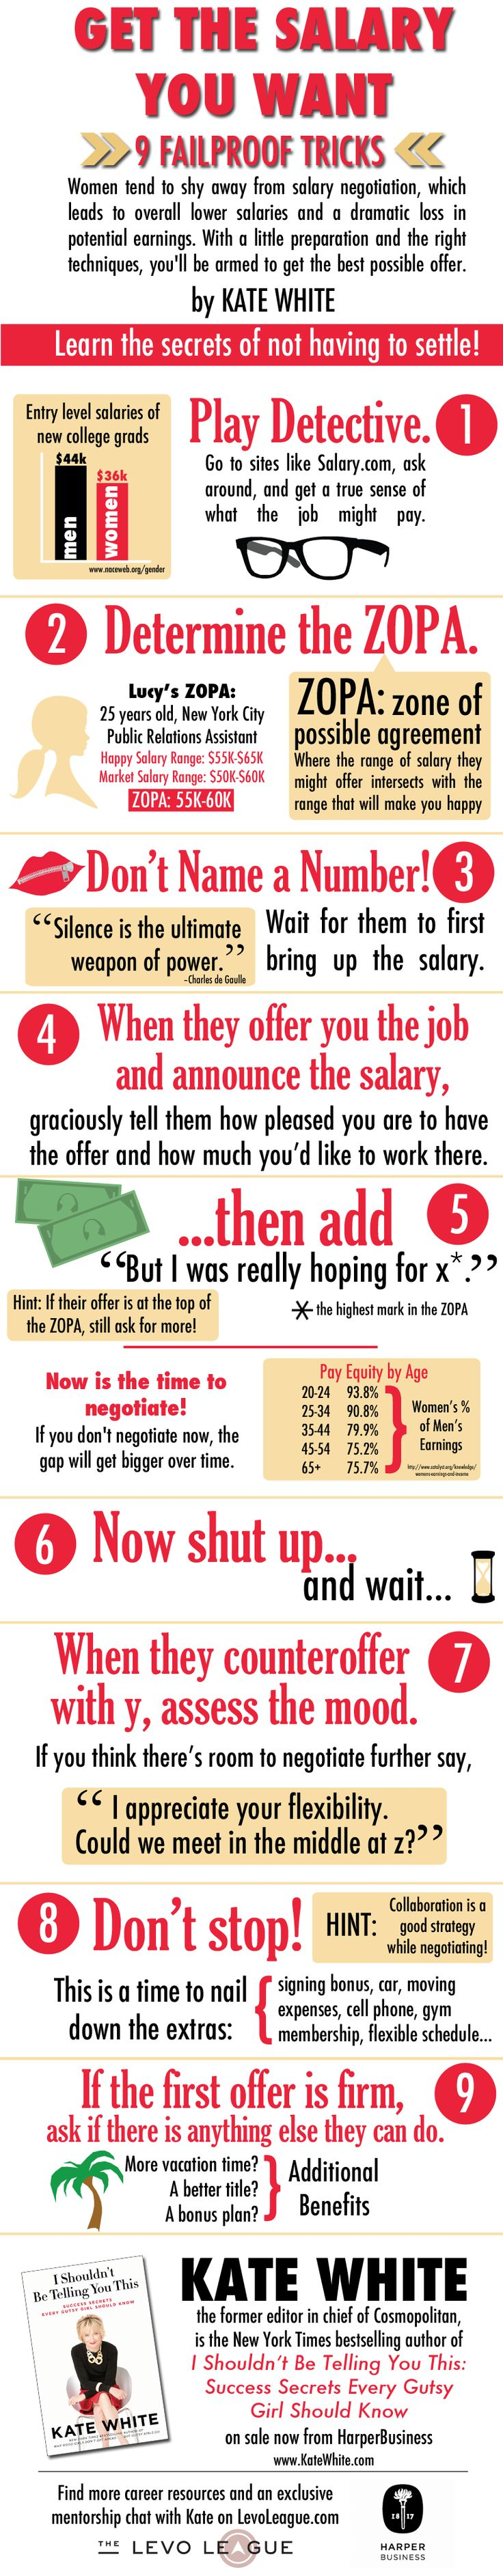 9 Failproof Salary Negotiation Tricks from Kate White ~ Levo League